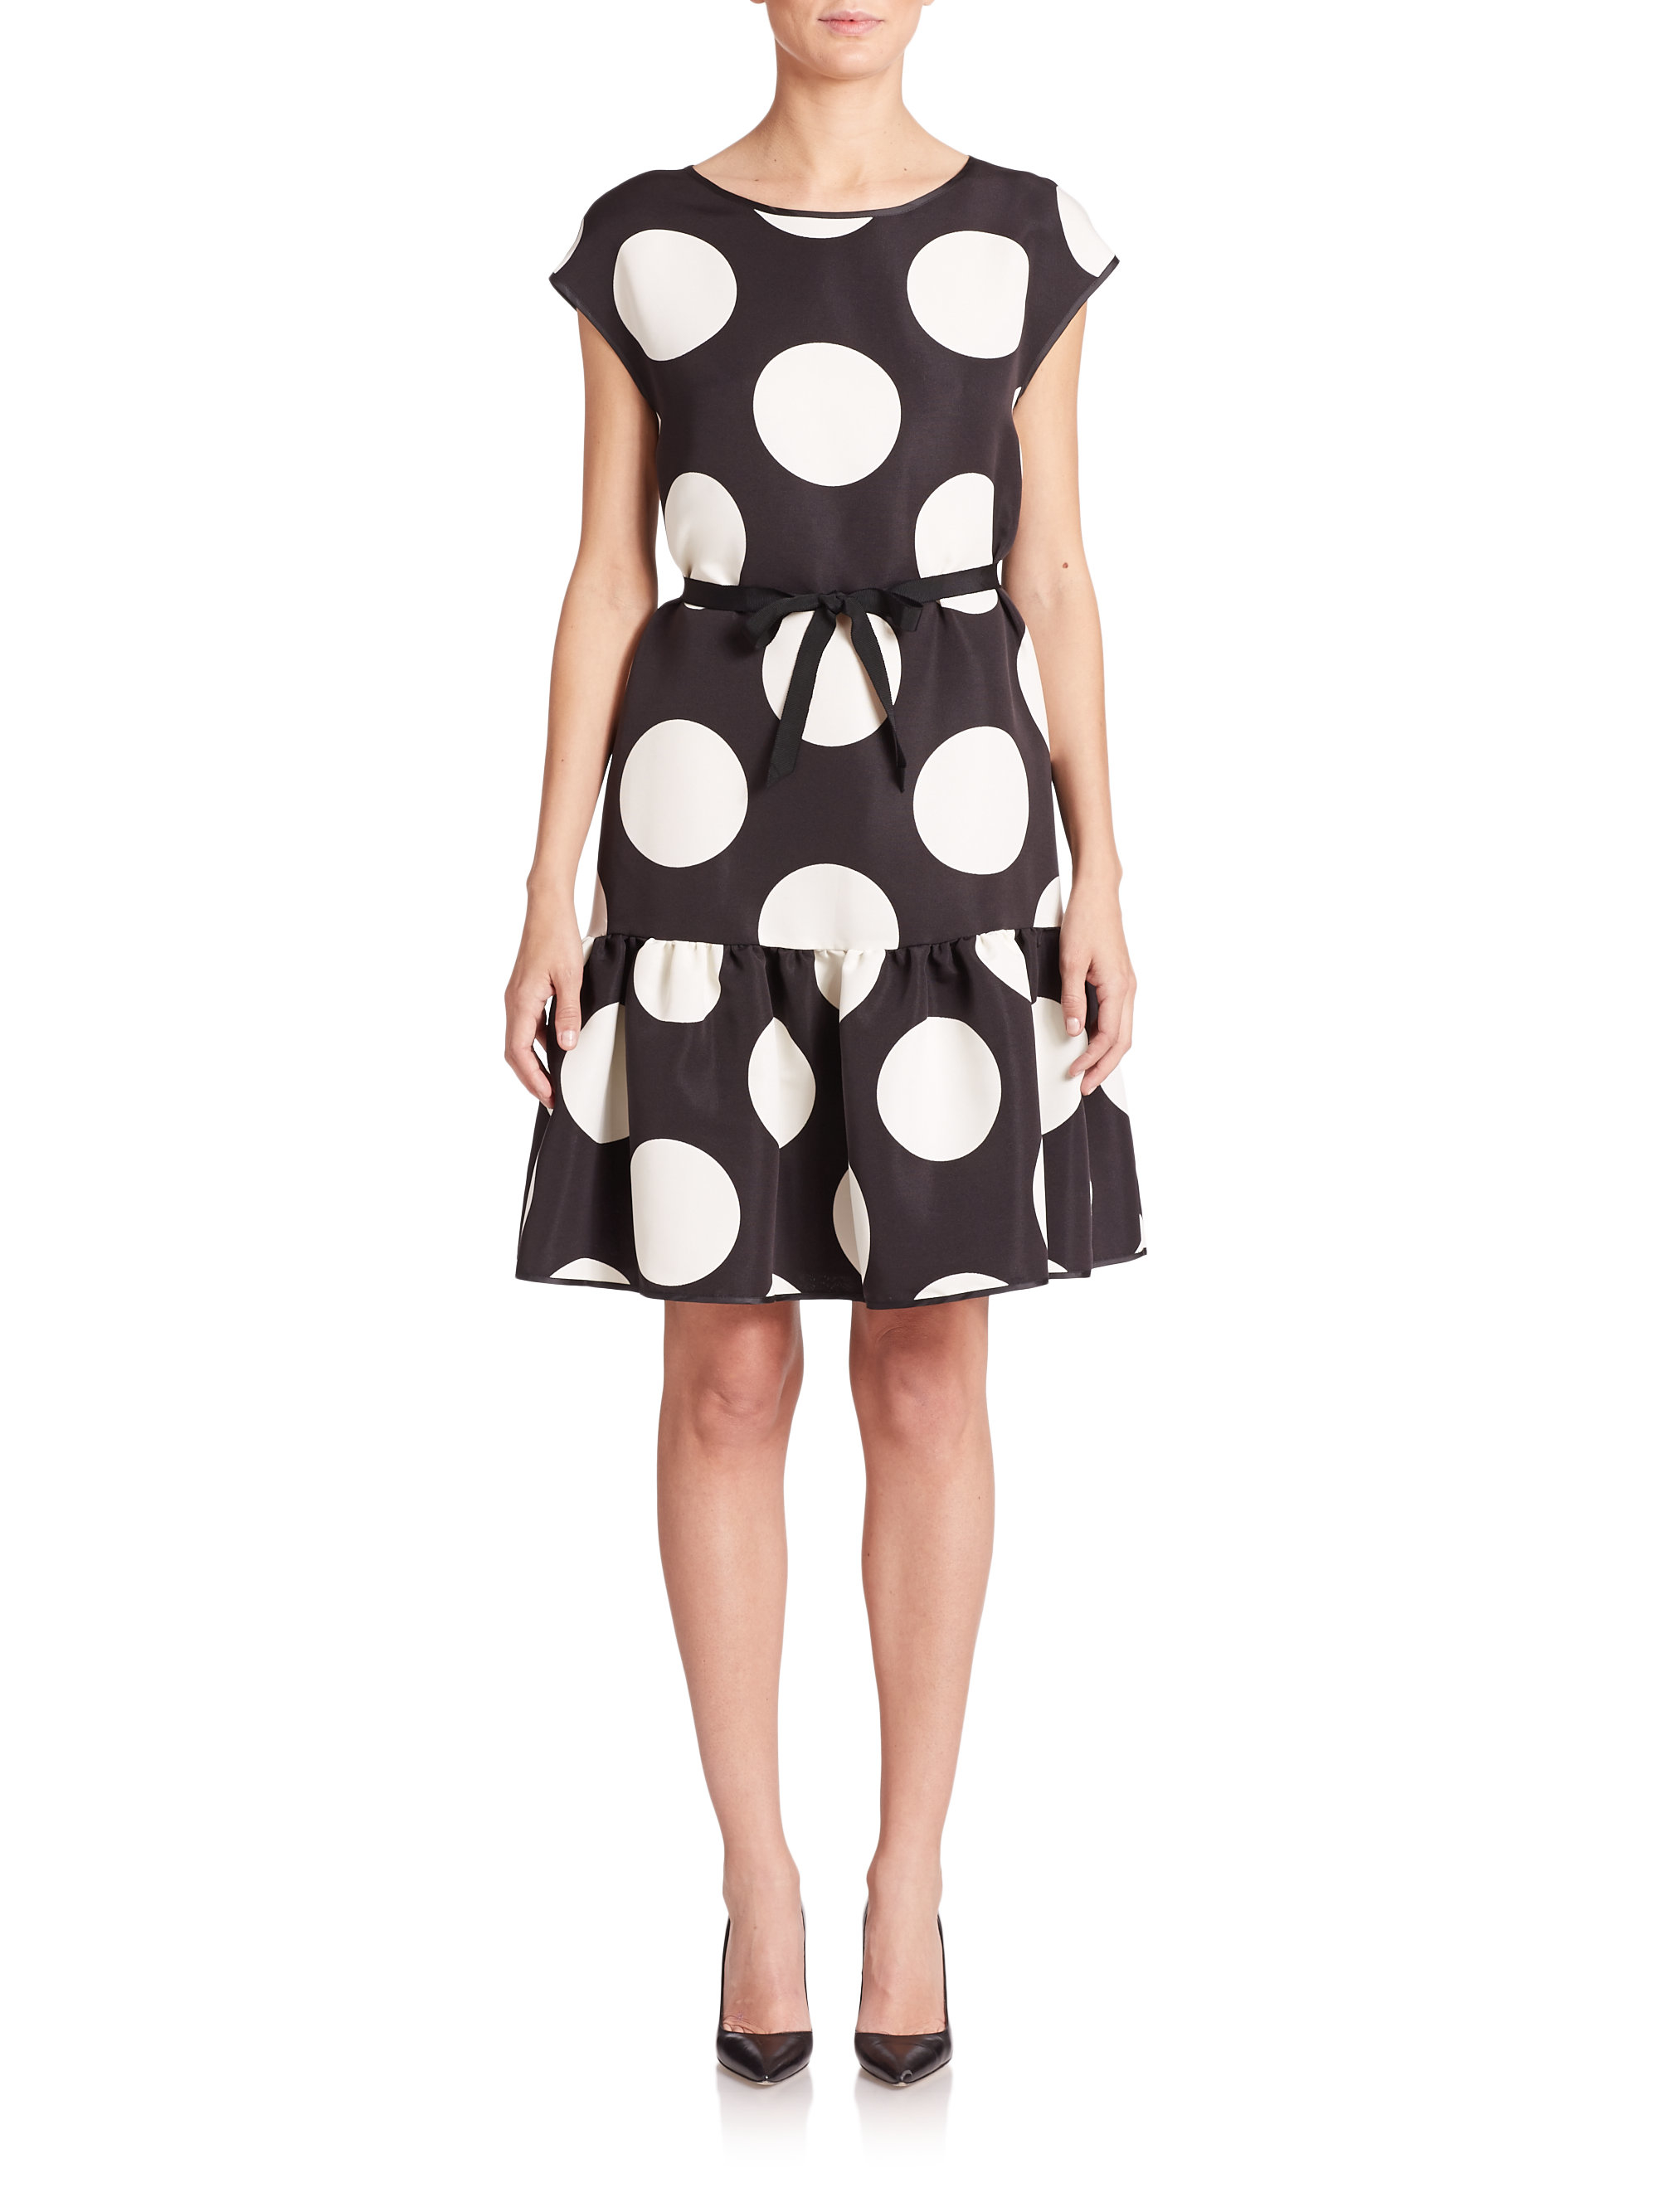 Boutique Moschino Woman Printed Crepe Mini Dress Black Size 46 Moschino Discount Order Cheap Lowest Price Best For Sale Outlet Genuine Sale Original vOuYZ4QG